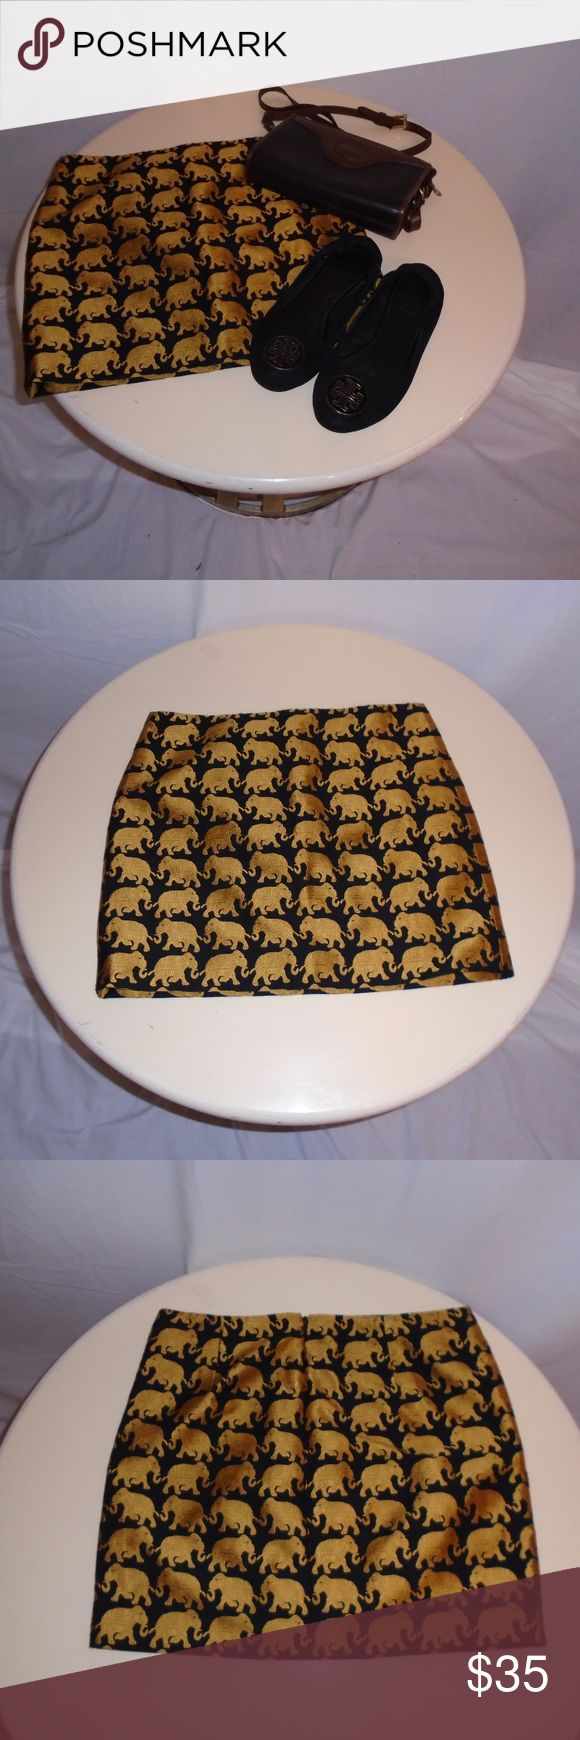 J Crew Origami Skirt Elephant Parade Excellent condition. No signs of damage or wear. Absolutely stunning. Has a zipper J. Crew Skirts